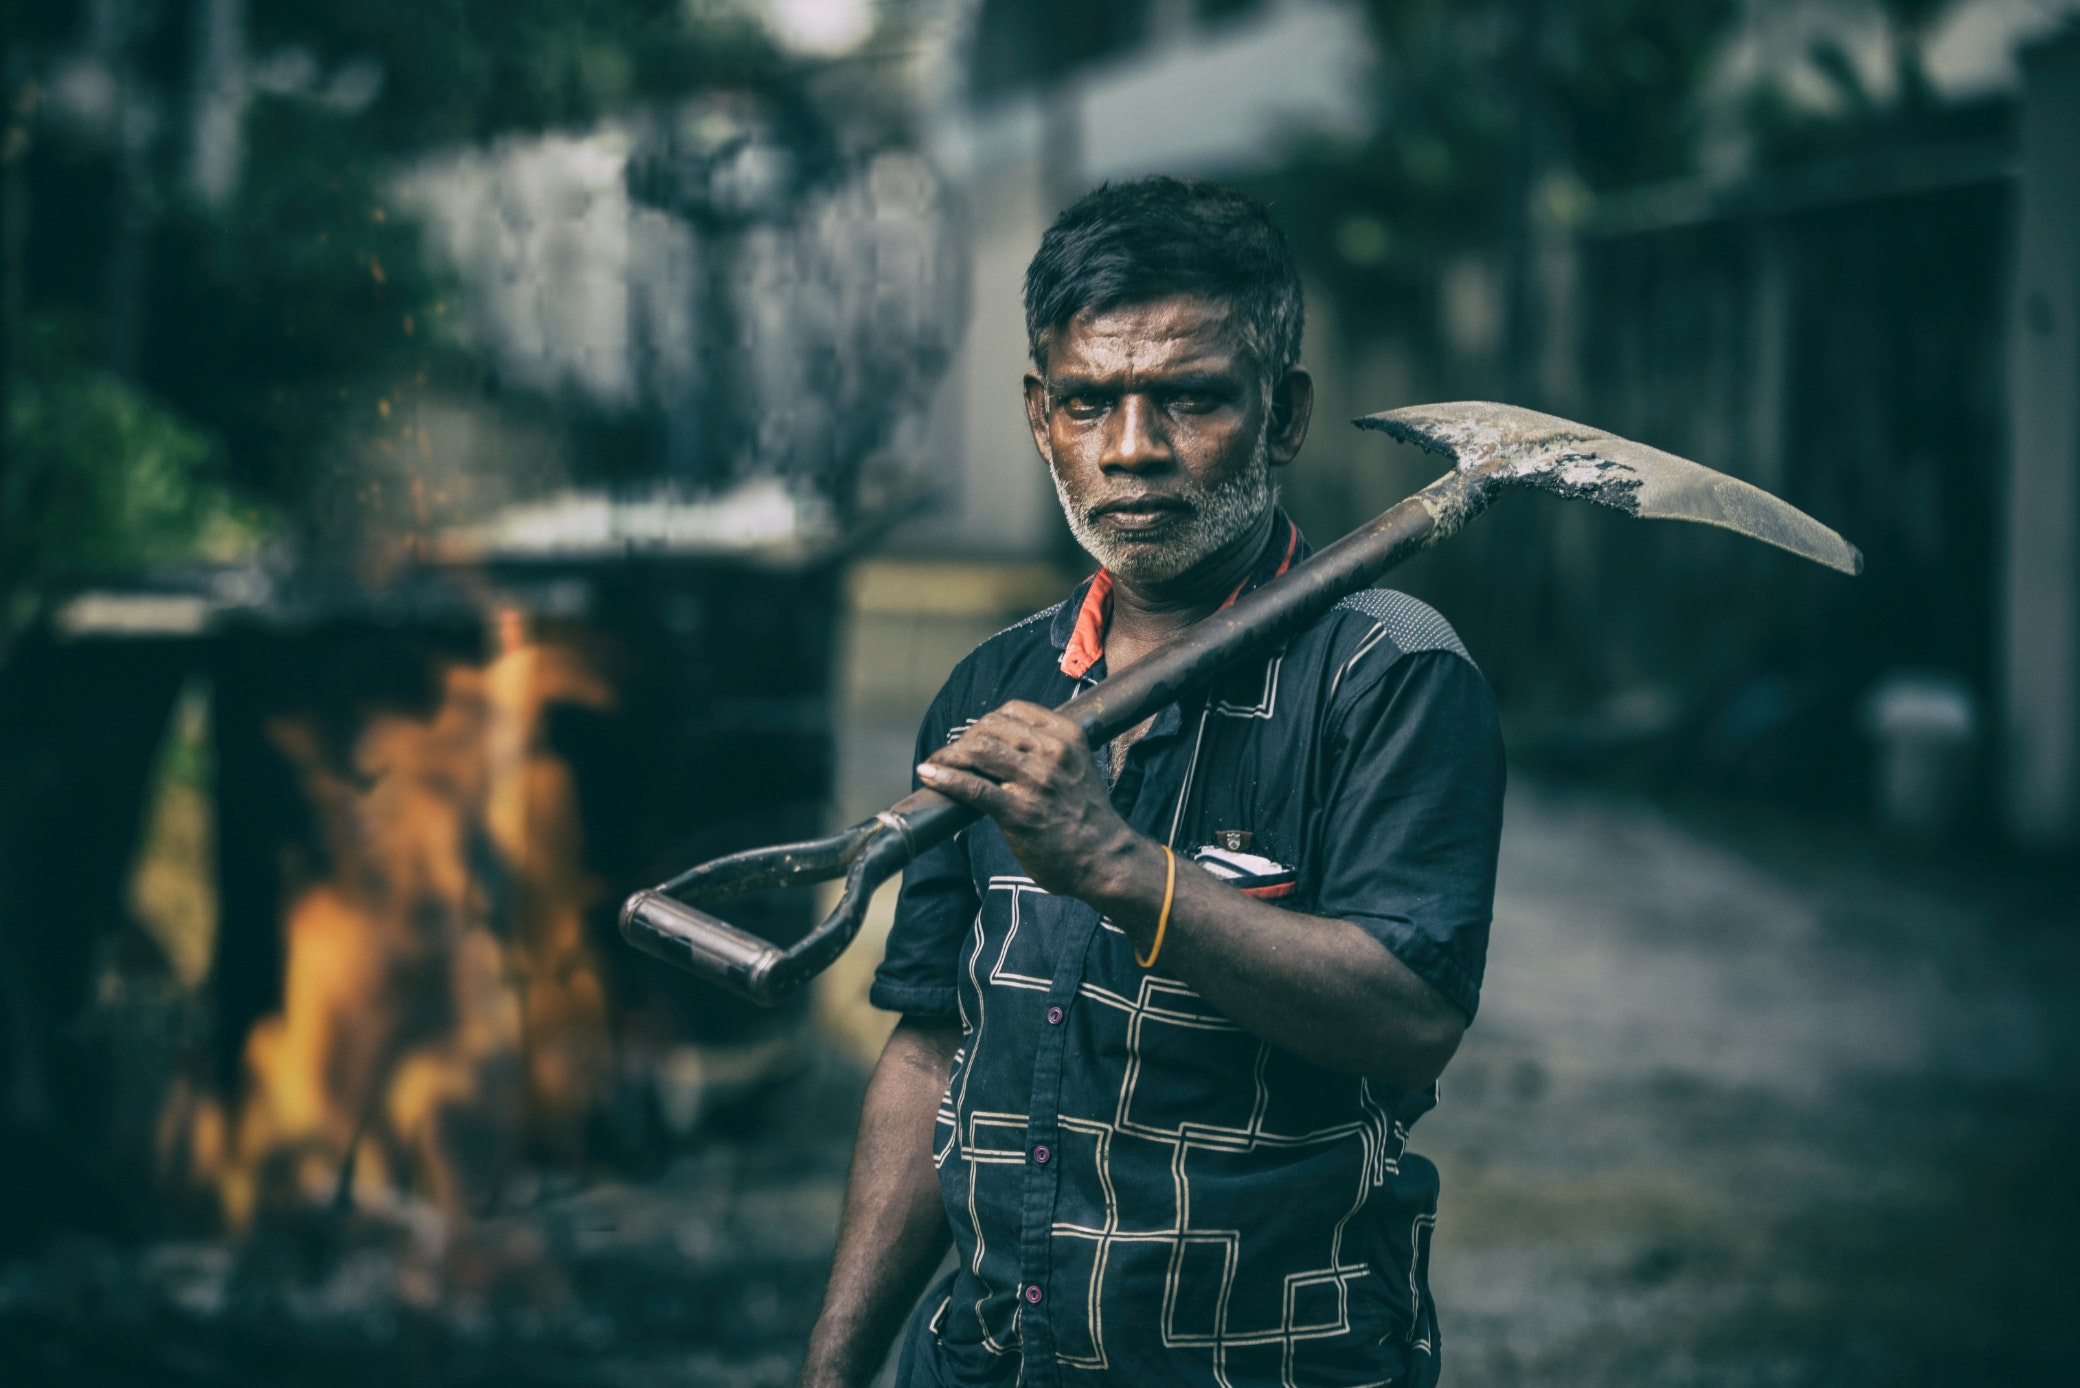 Depth of Field Photography of Man in Black Shirt Holding Shovel, Action, Adult, Job, Leisure, HQ Photo